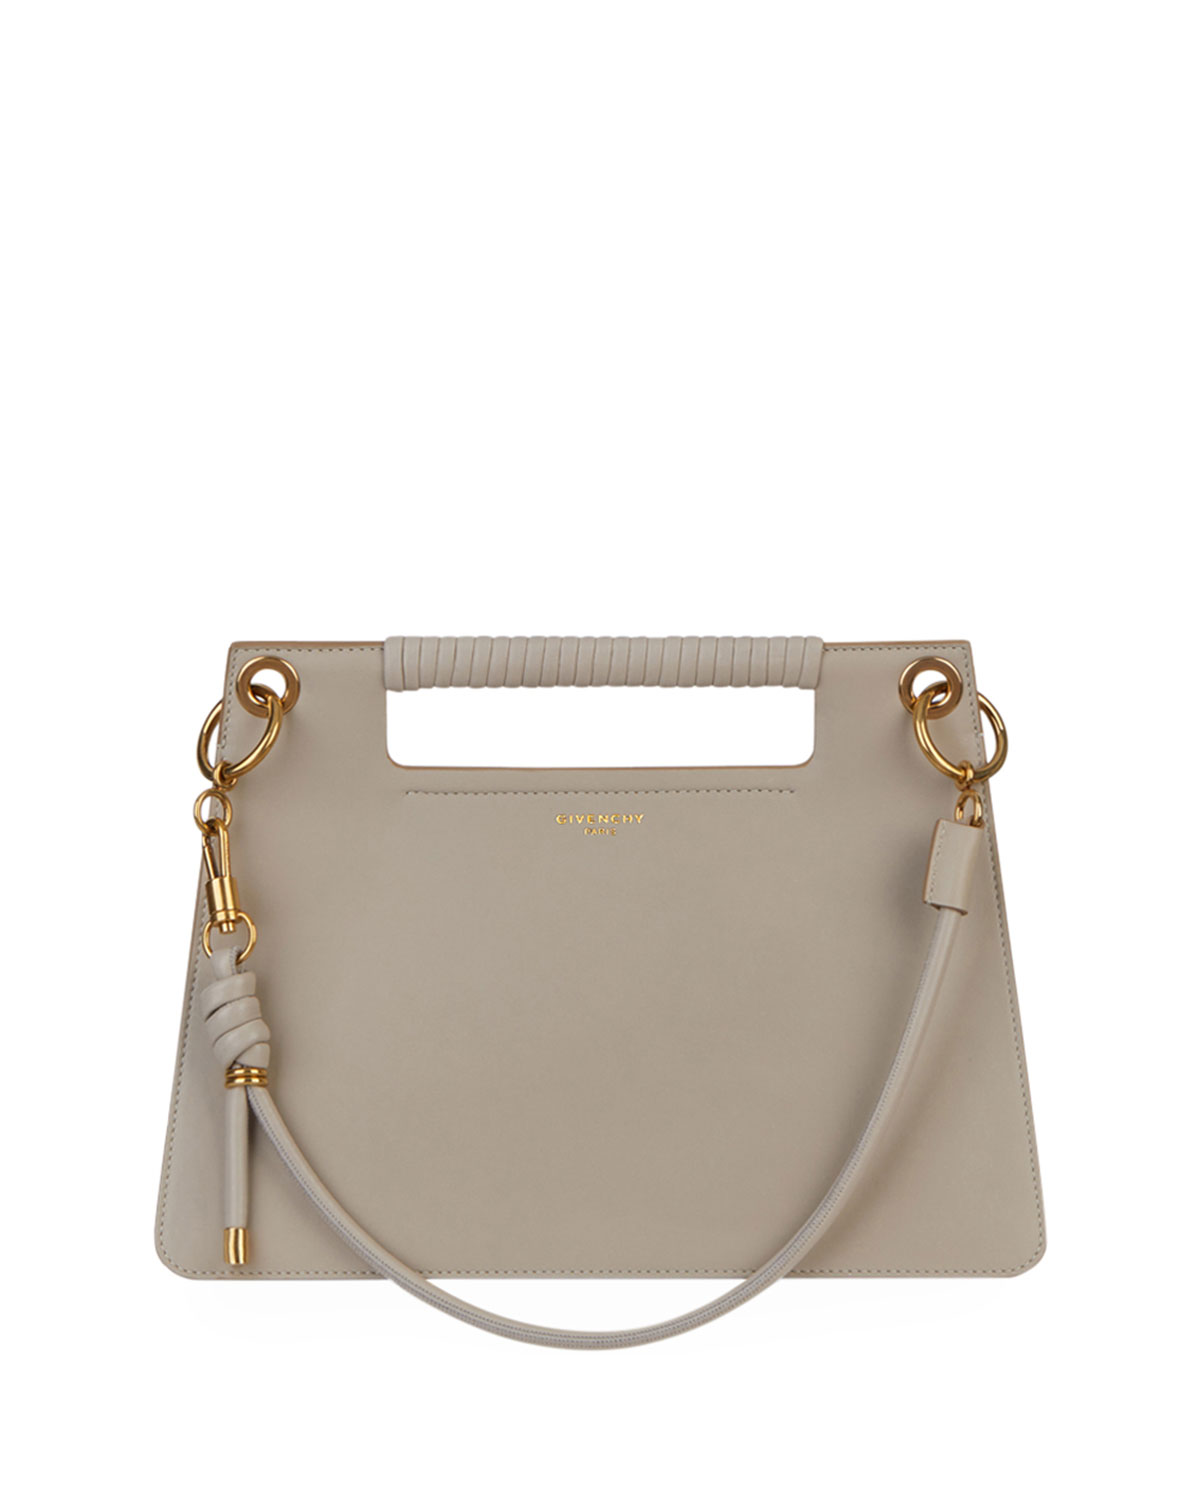 Givenchy Whip Medium Smooth Leather Shoulder Bag  304be3e8eb332